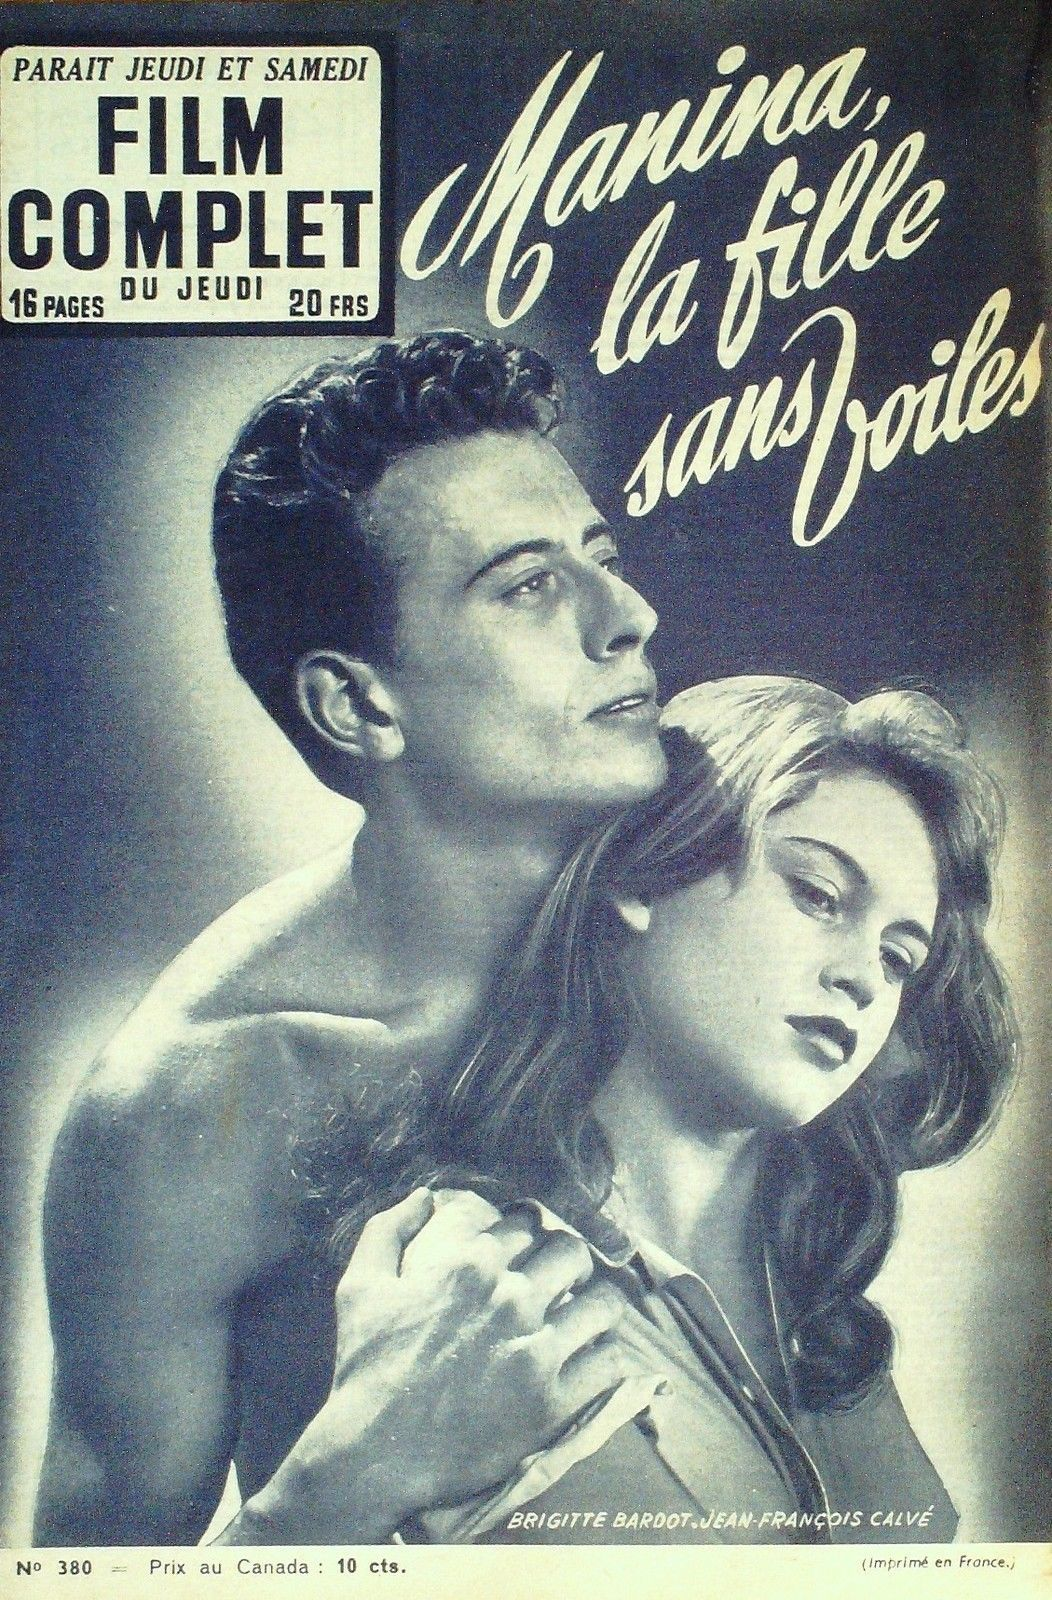 Manina la fille sans voiles (The Girl in the Bikini) | French film guide, 1952.